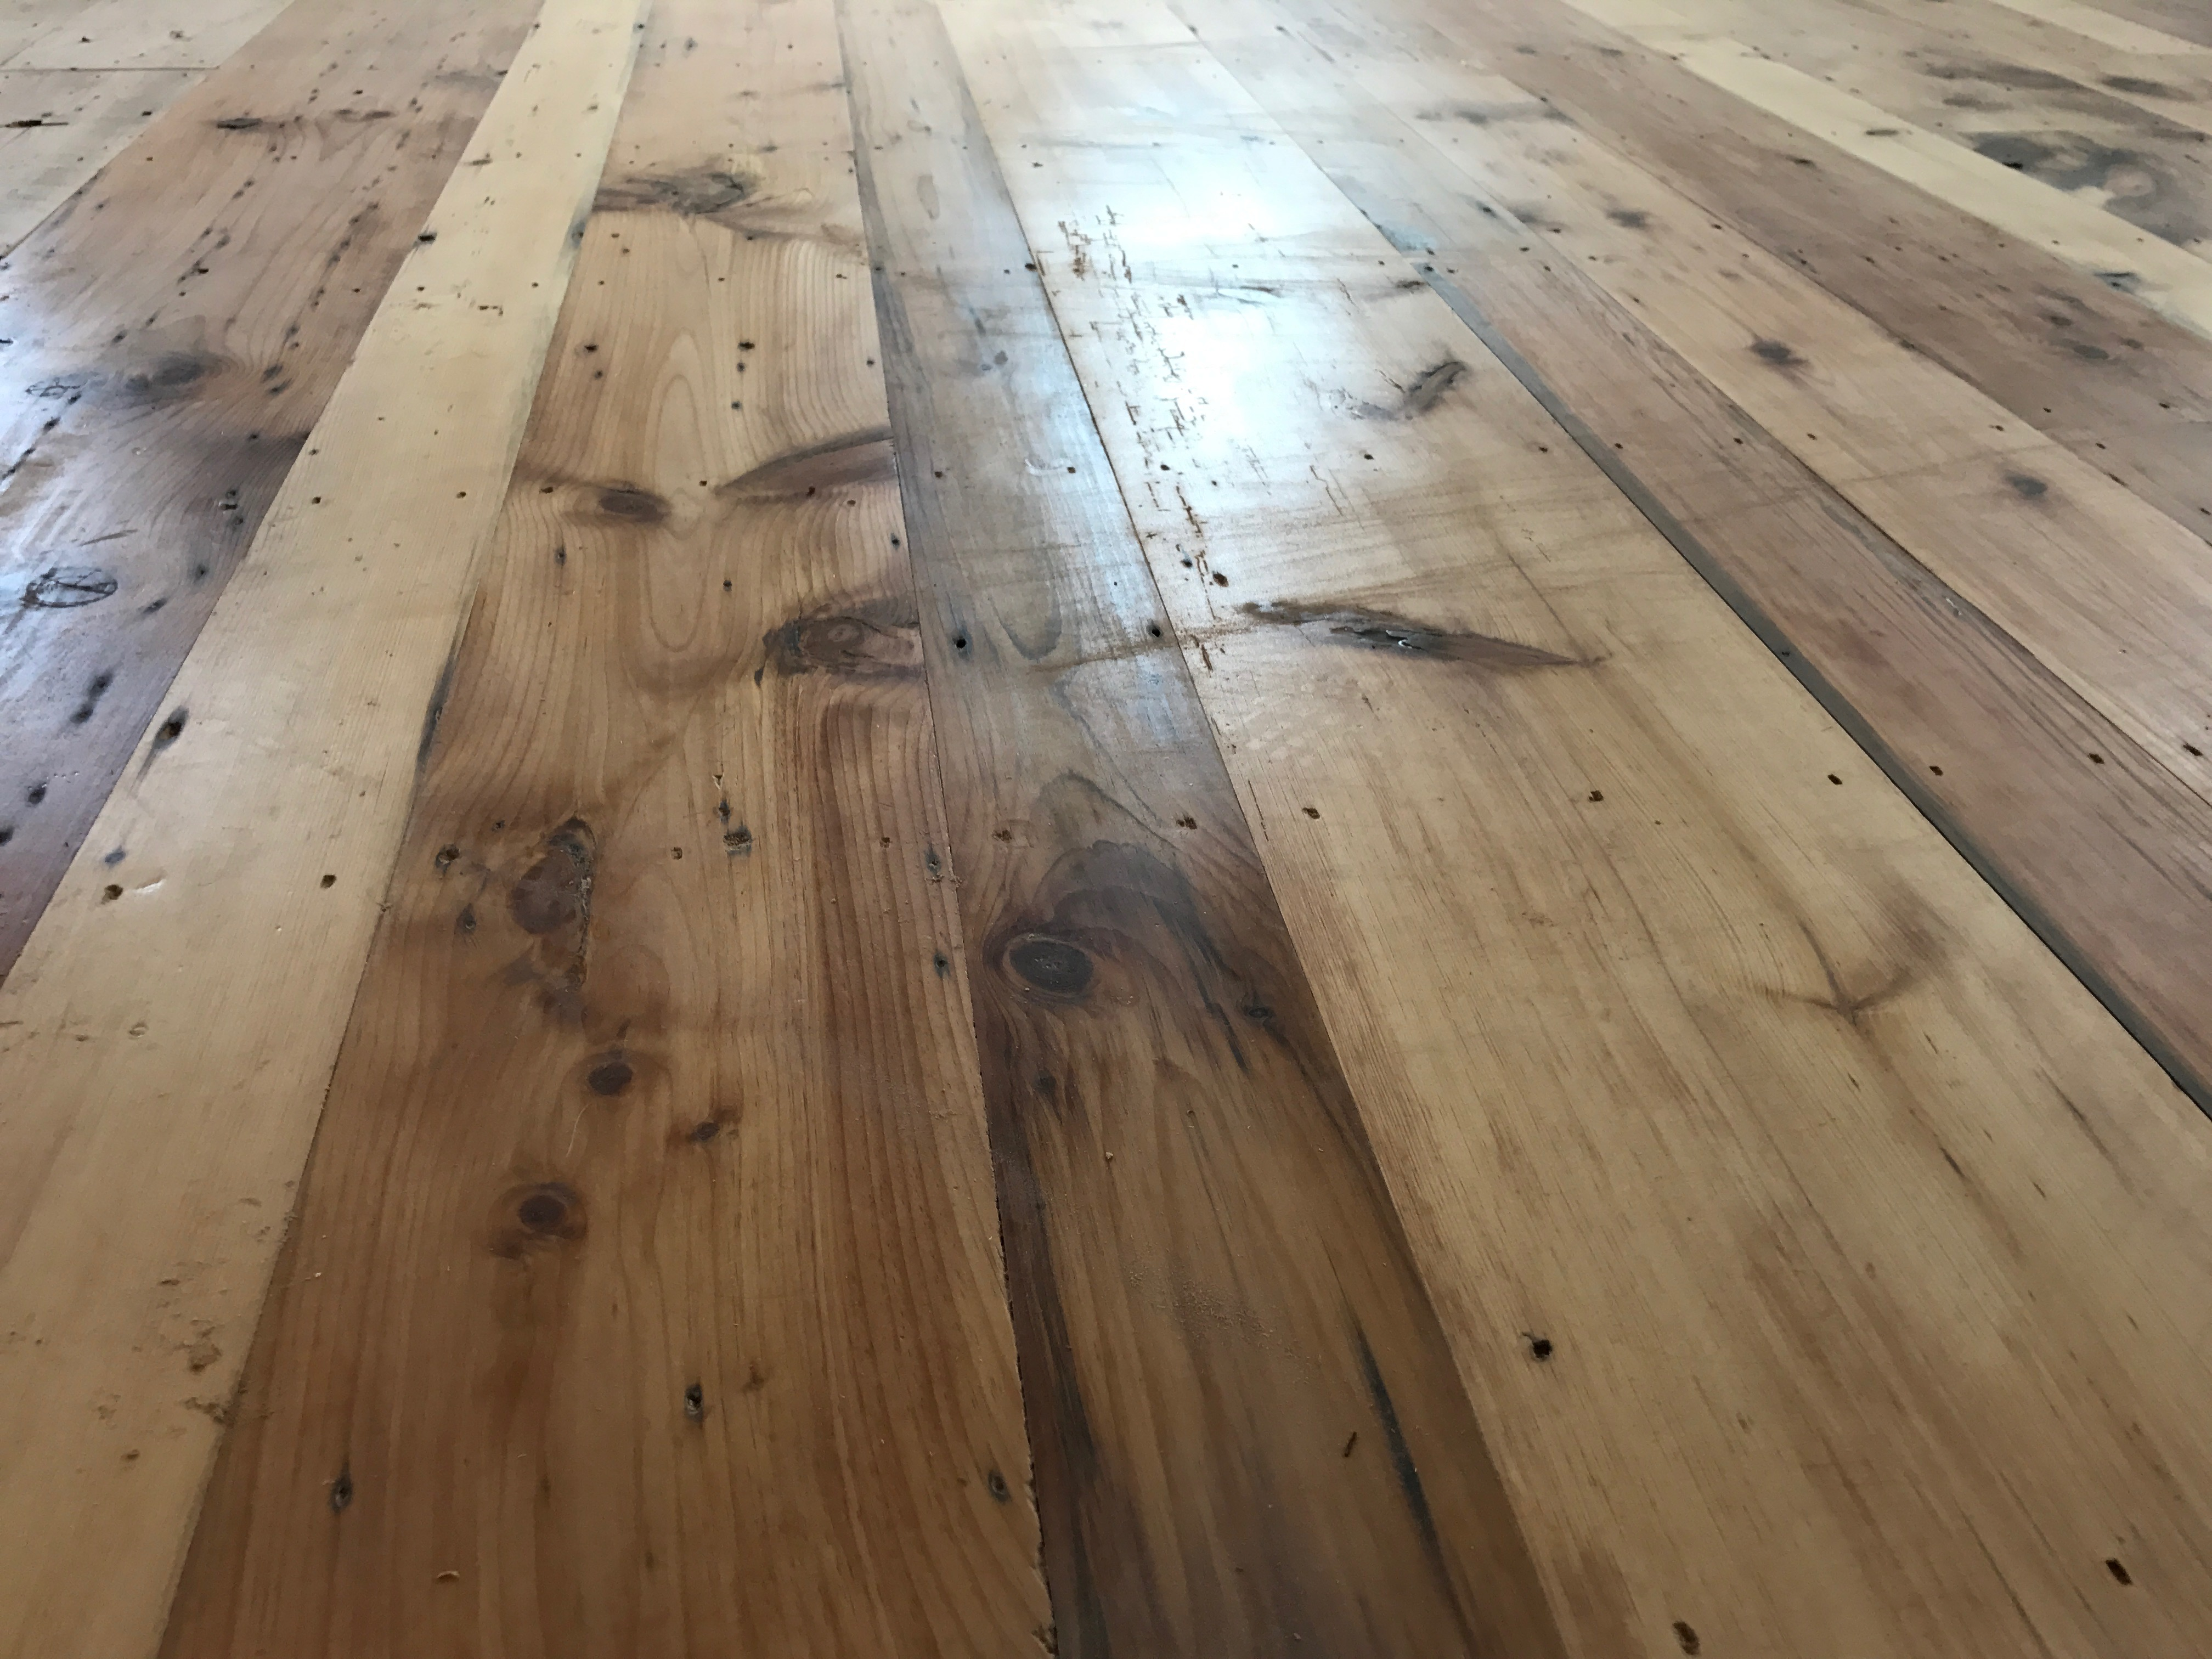 Antique pumpkin pine floor in a residence in Boothbay Harbor, Maine